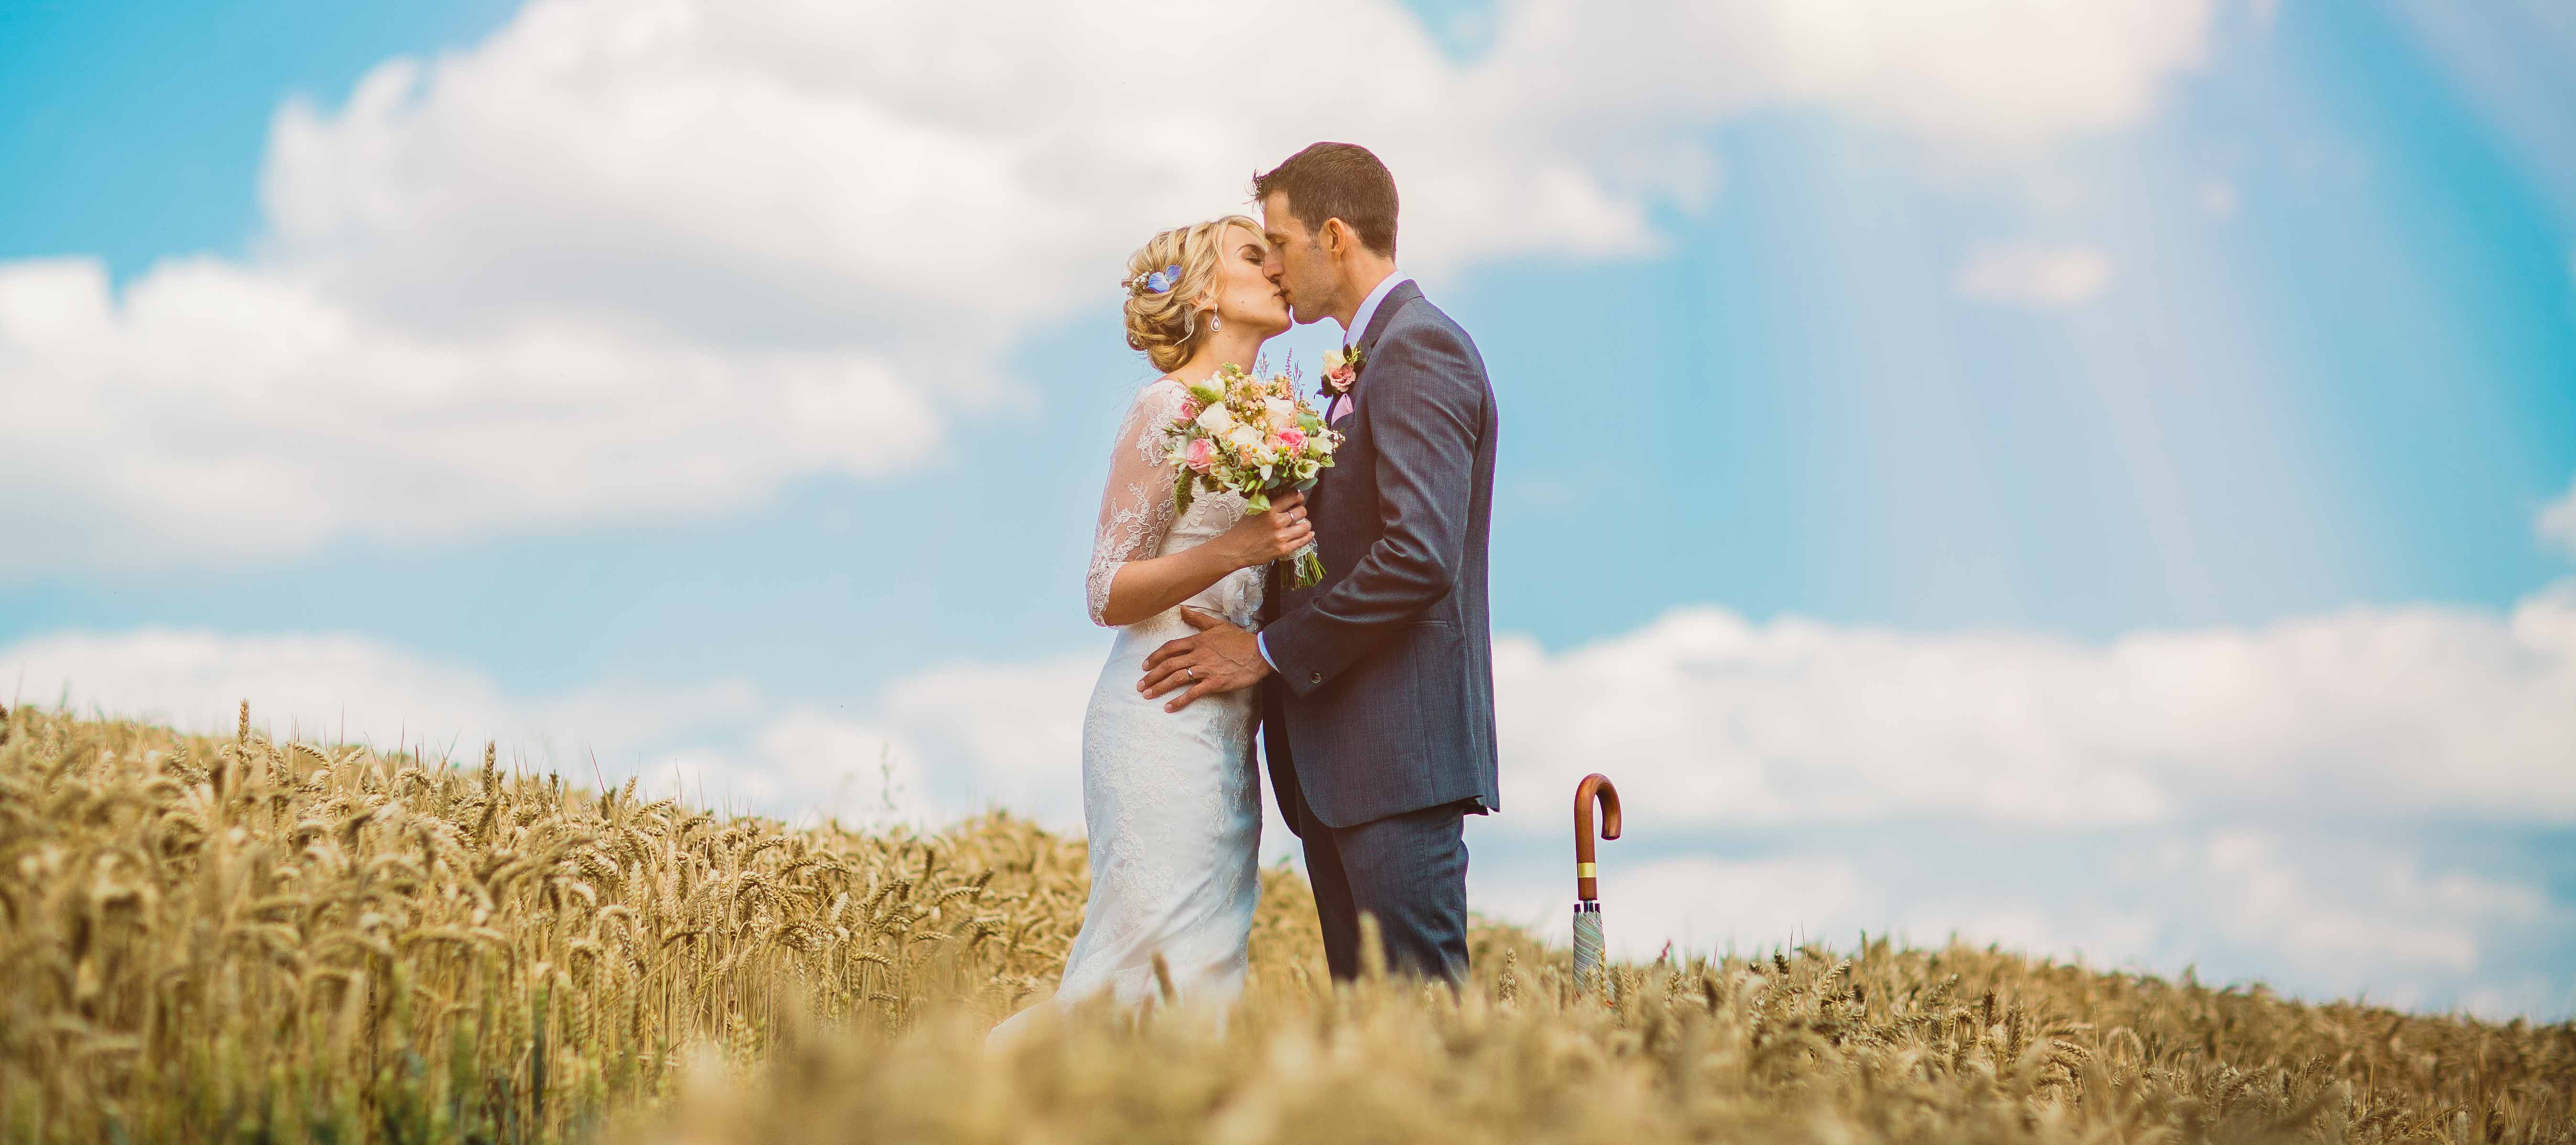 Tom is a creative Somerset wedding and commercial photographer based in Bath covering the UK and beyond.